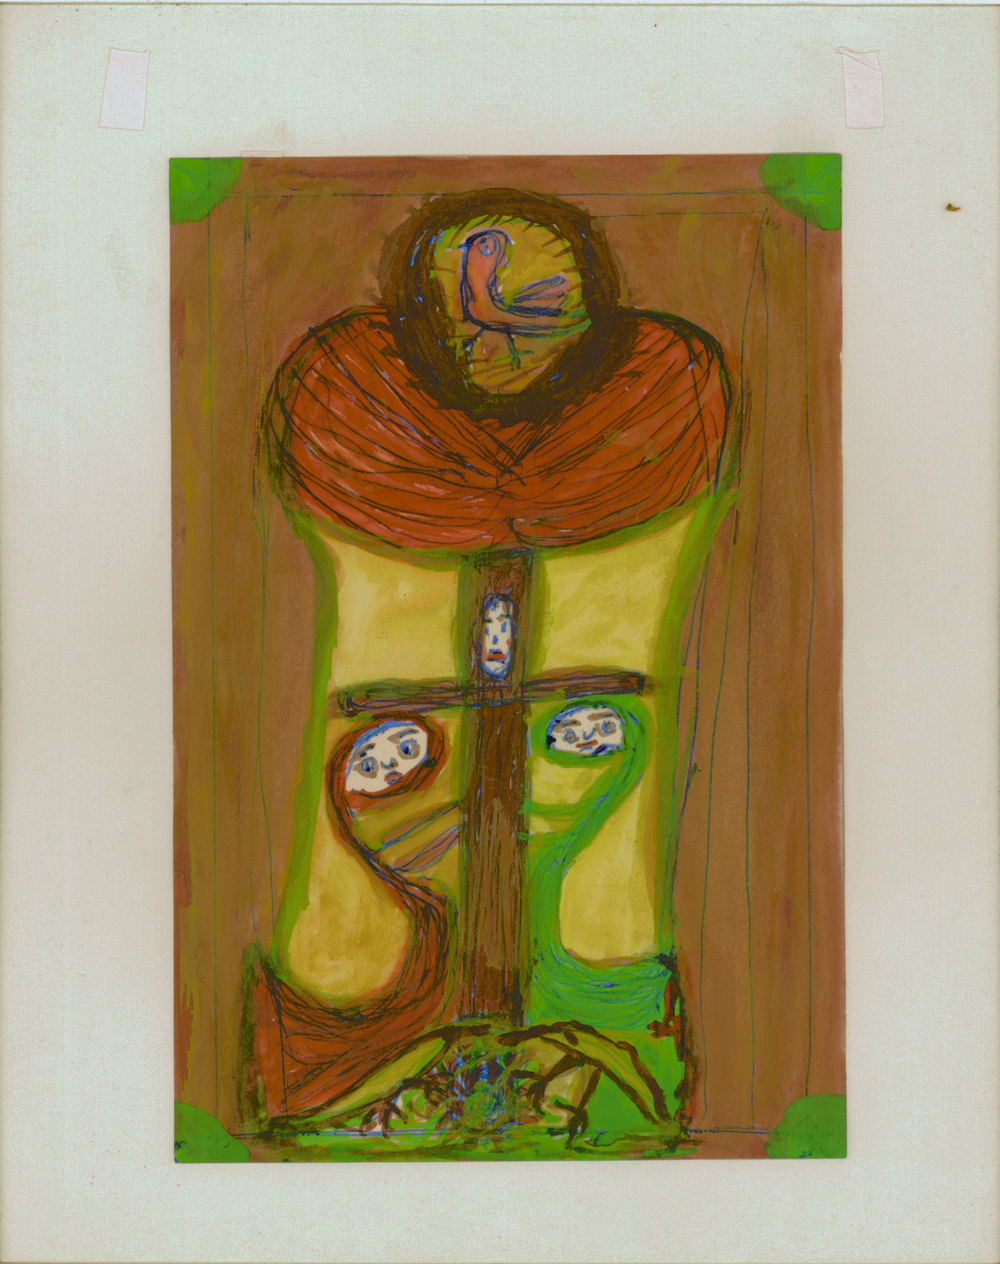 Betty Zakoian, Untitled, tempera and pen on paper, n.d.